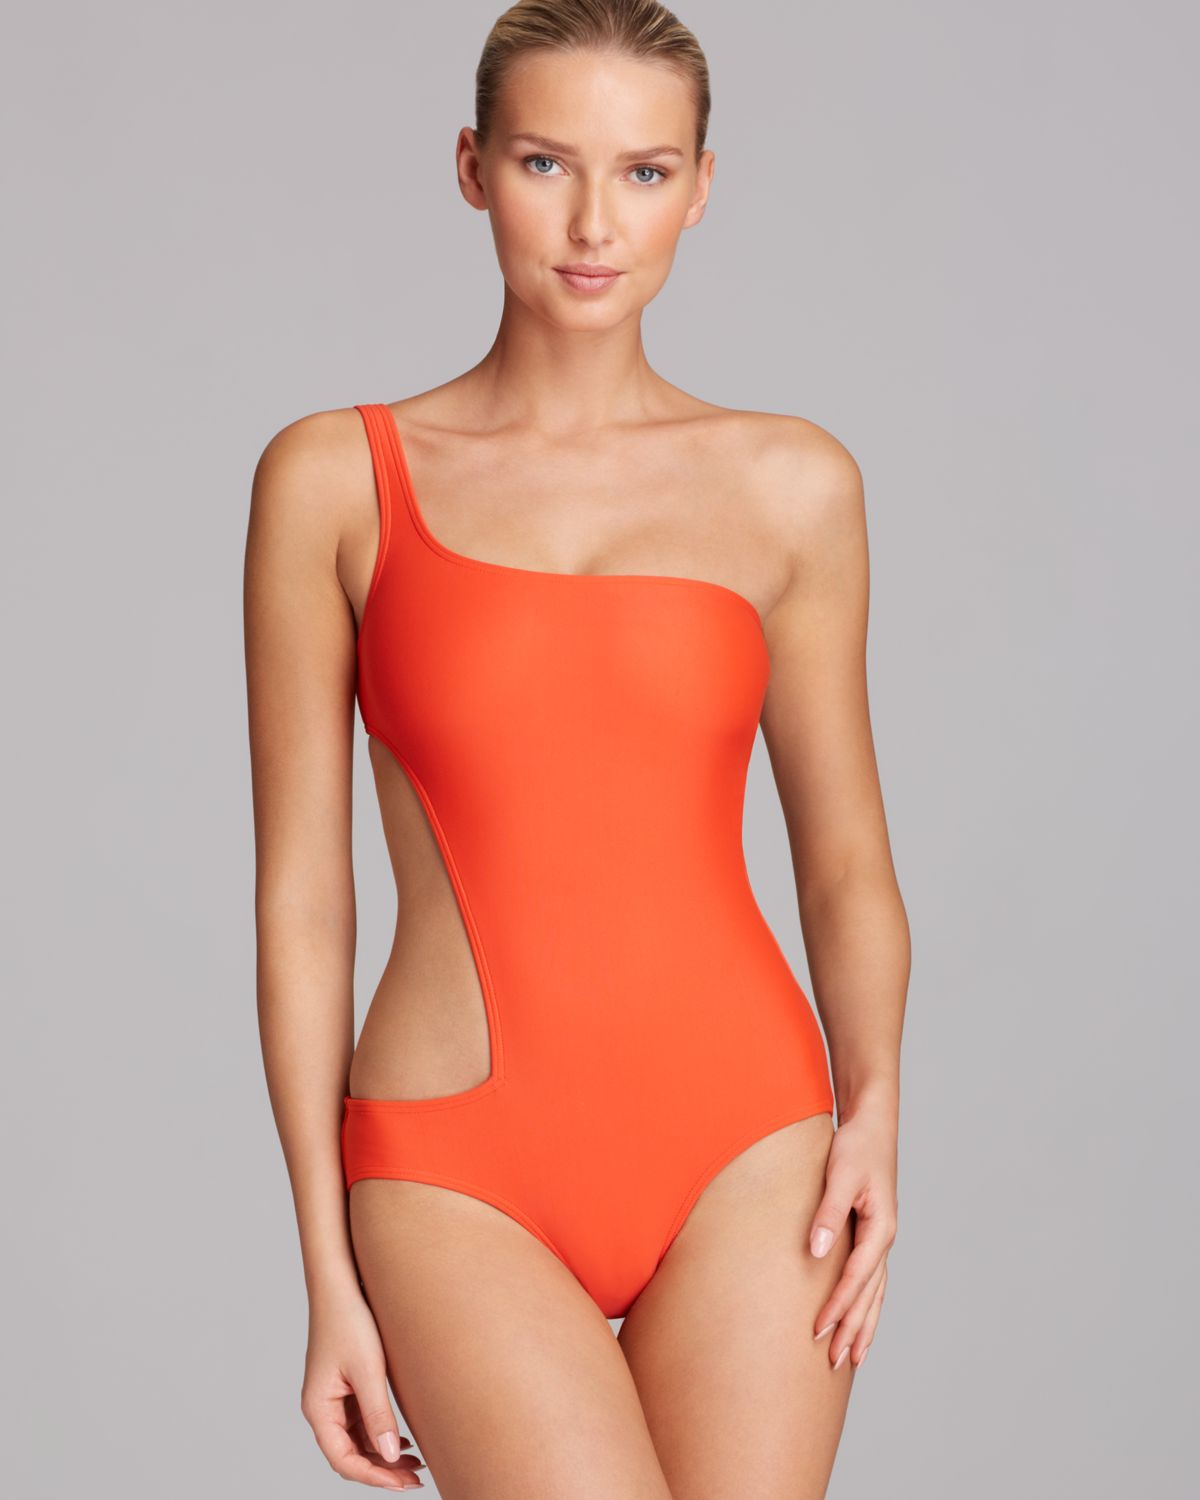 4544bf7502afa DKNY Solid One Shoulder Asymmetrical Cut Out One Piece Swimsuit in ...